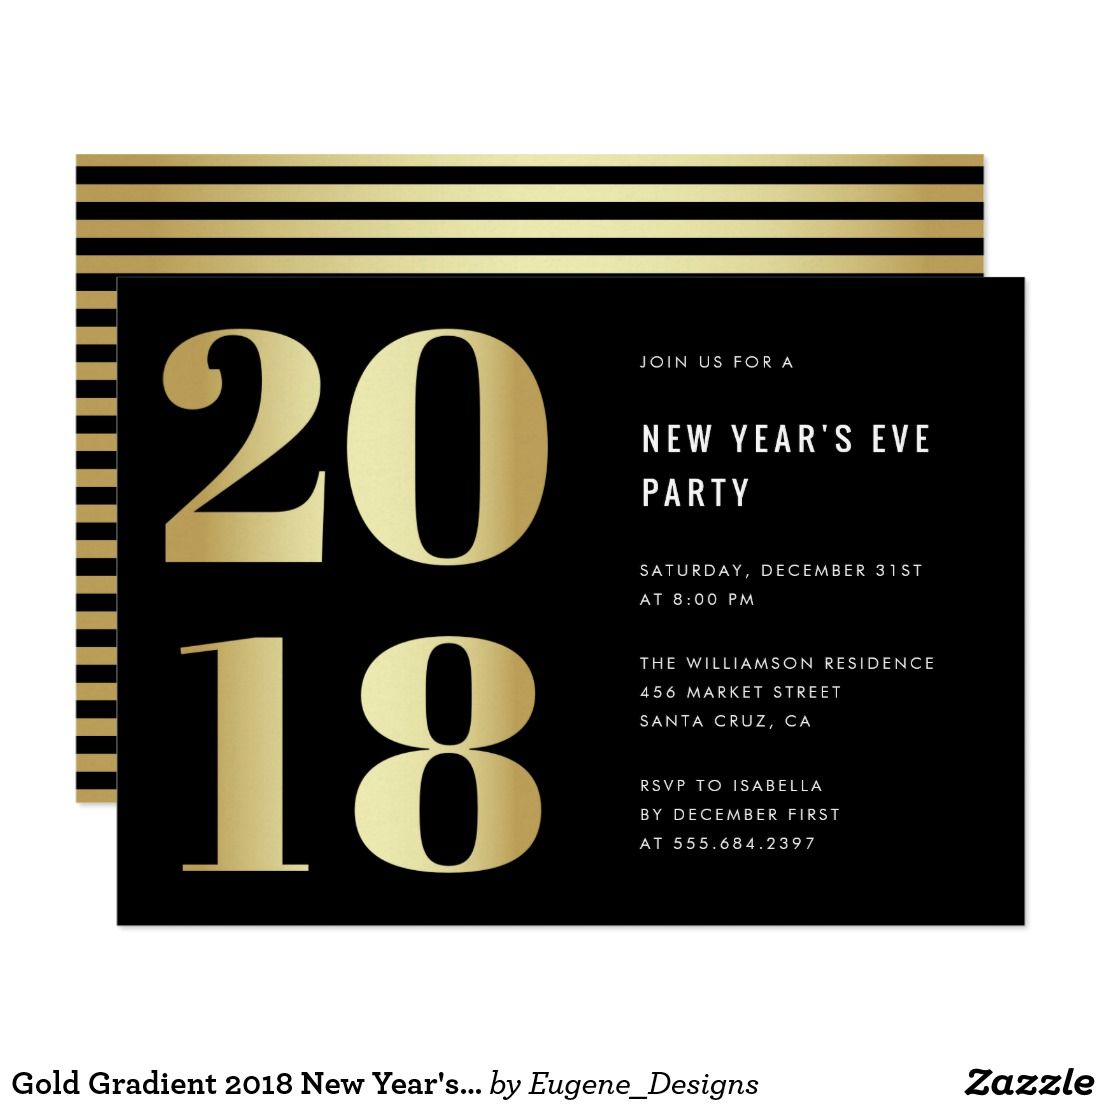 gold gradient 2018 new years eve party invitation